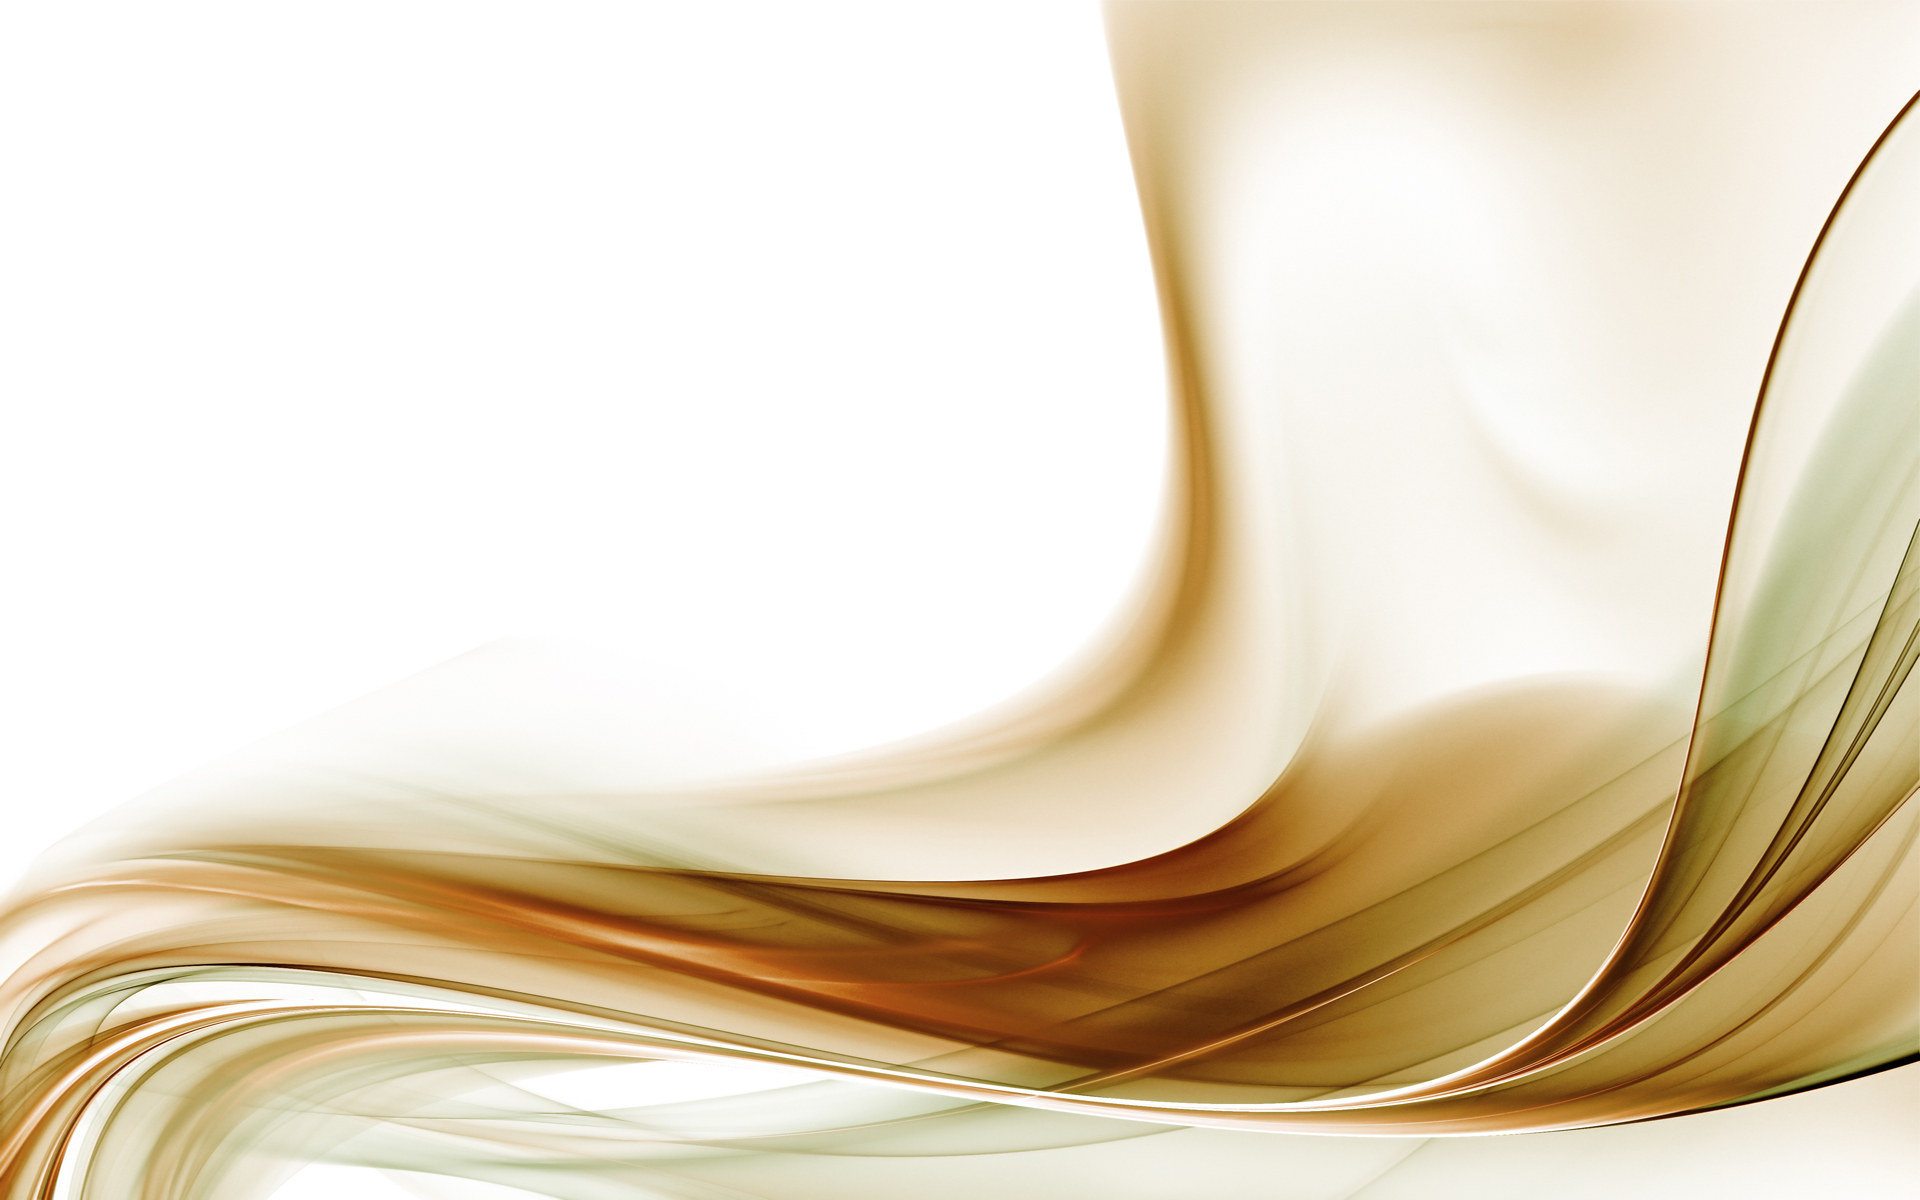 abstract gold search background wallpapers backgrounds cartoon 1920x1200